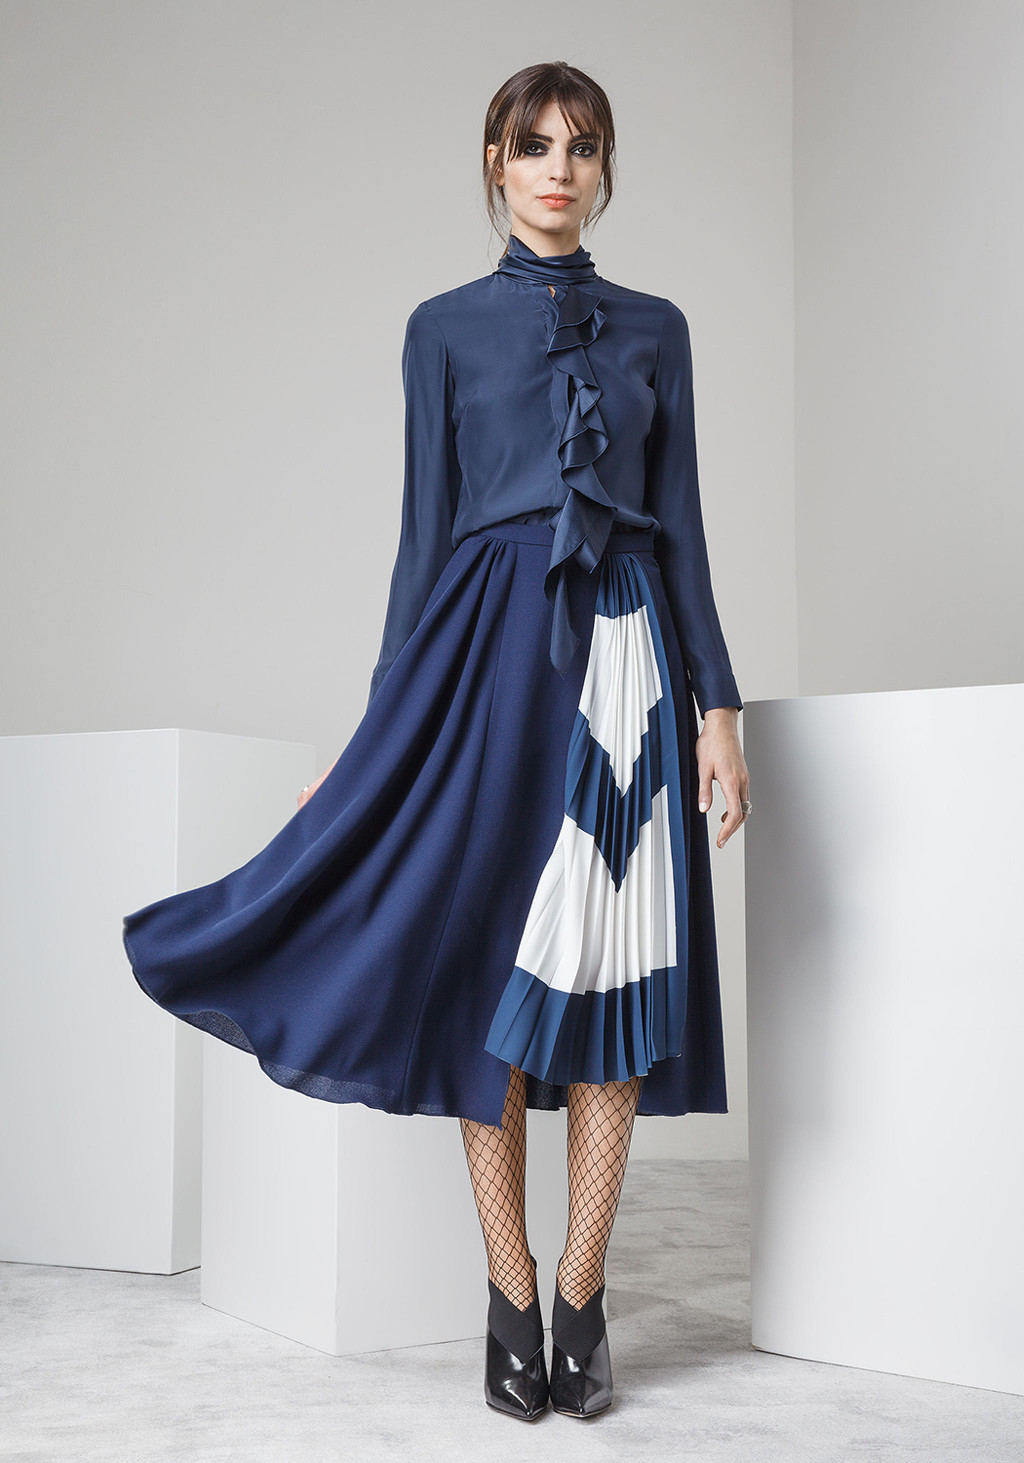 Silk shirt with studs on the back - Wool crepe skirt pleted pannel